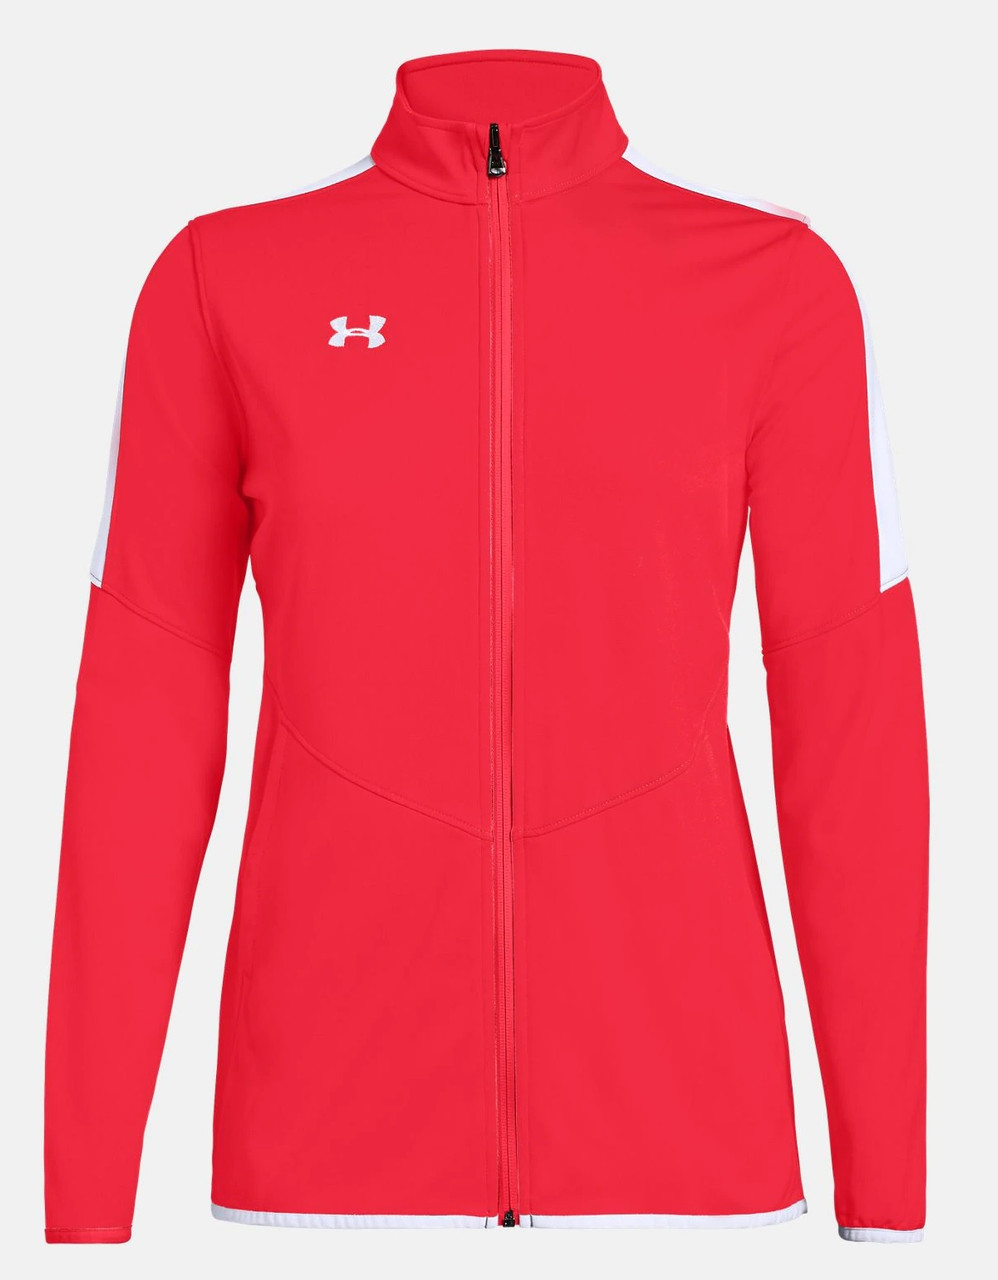 UA Women's Rival Knit Jacket- Red